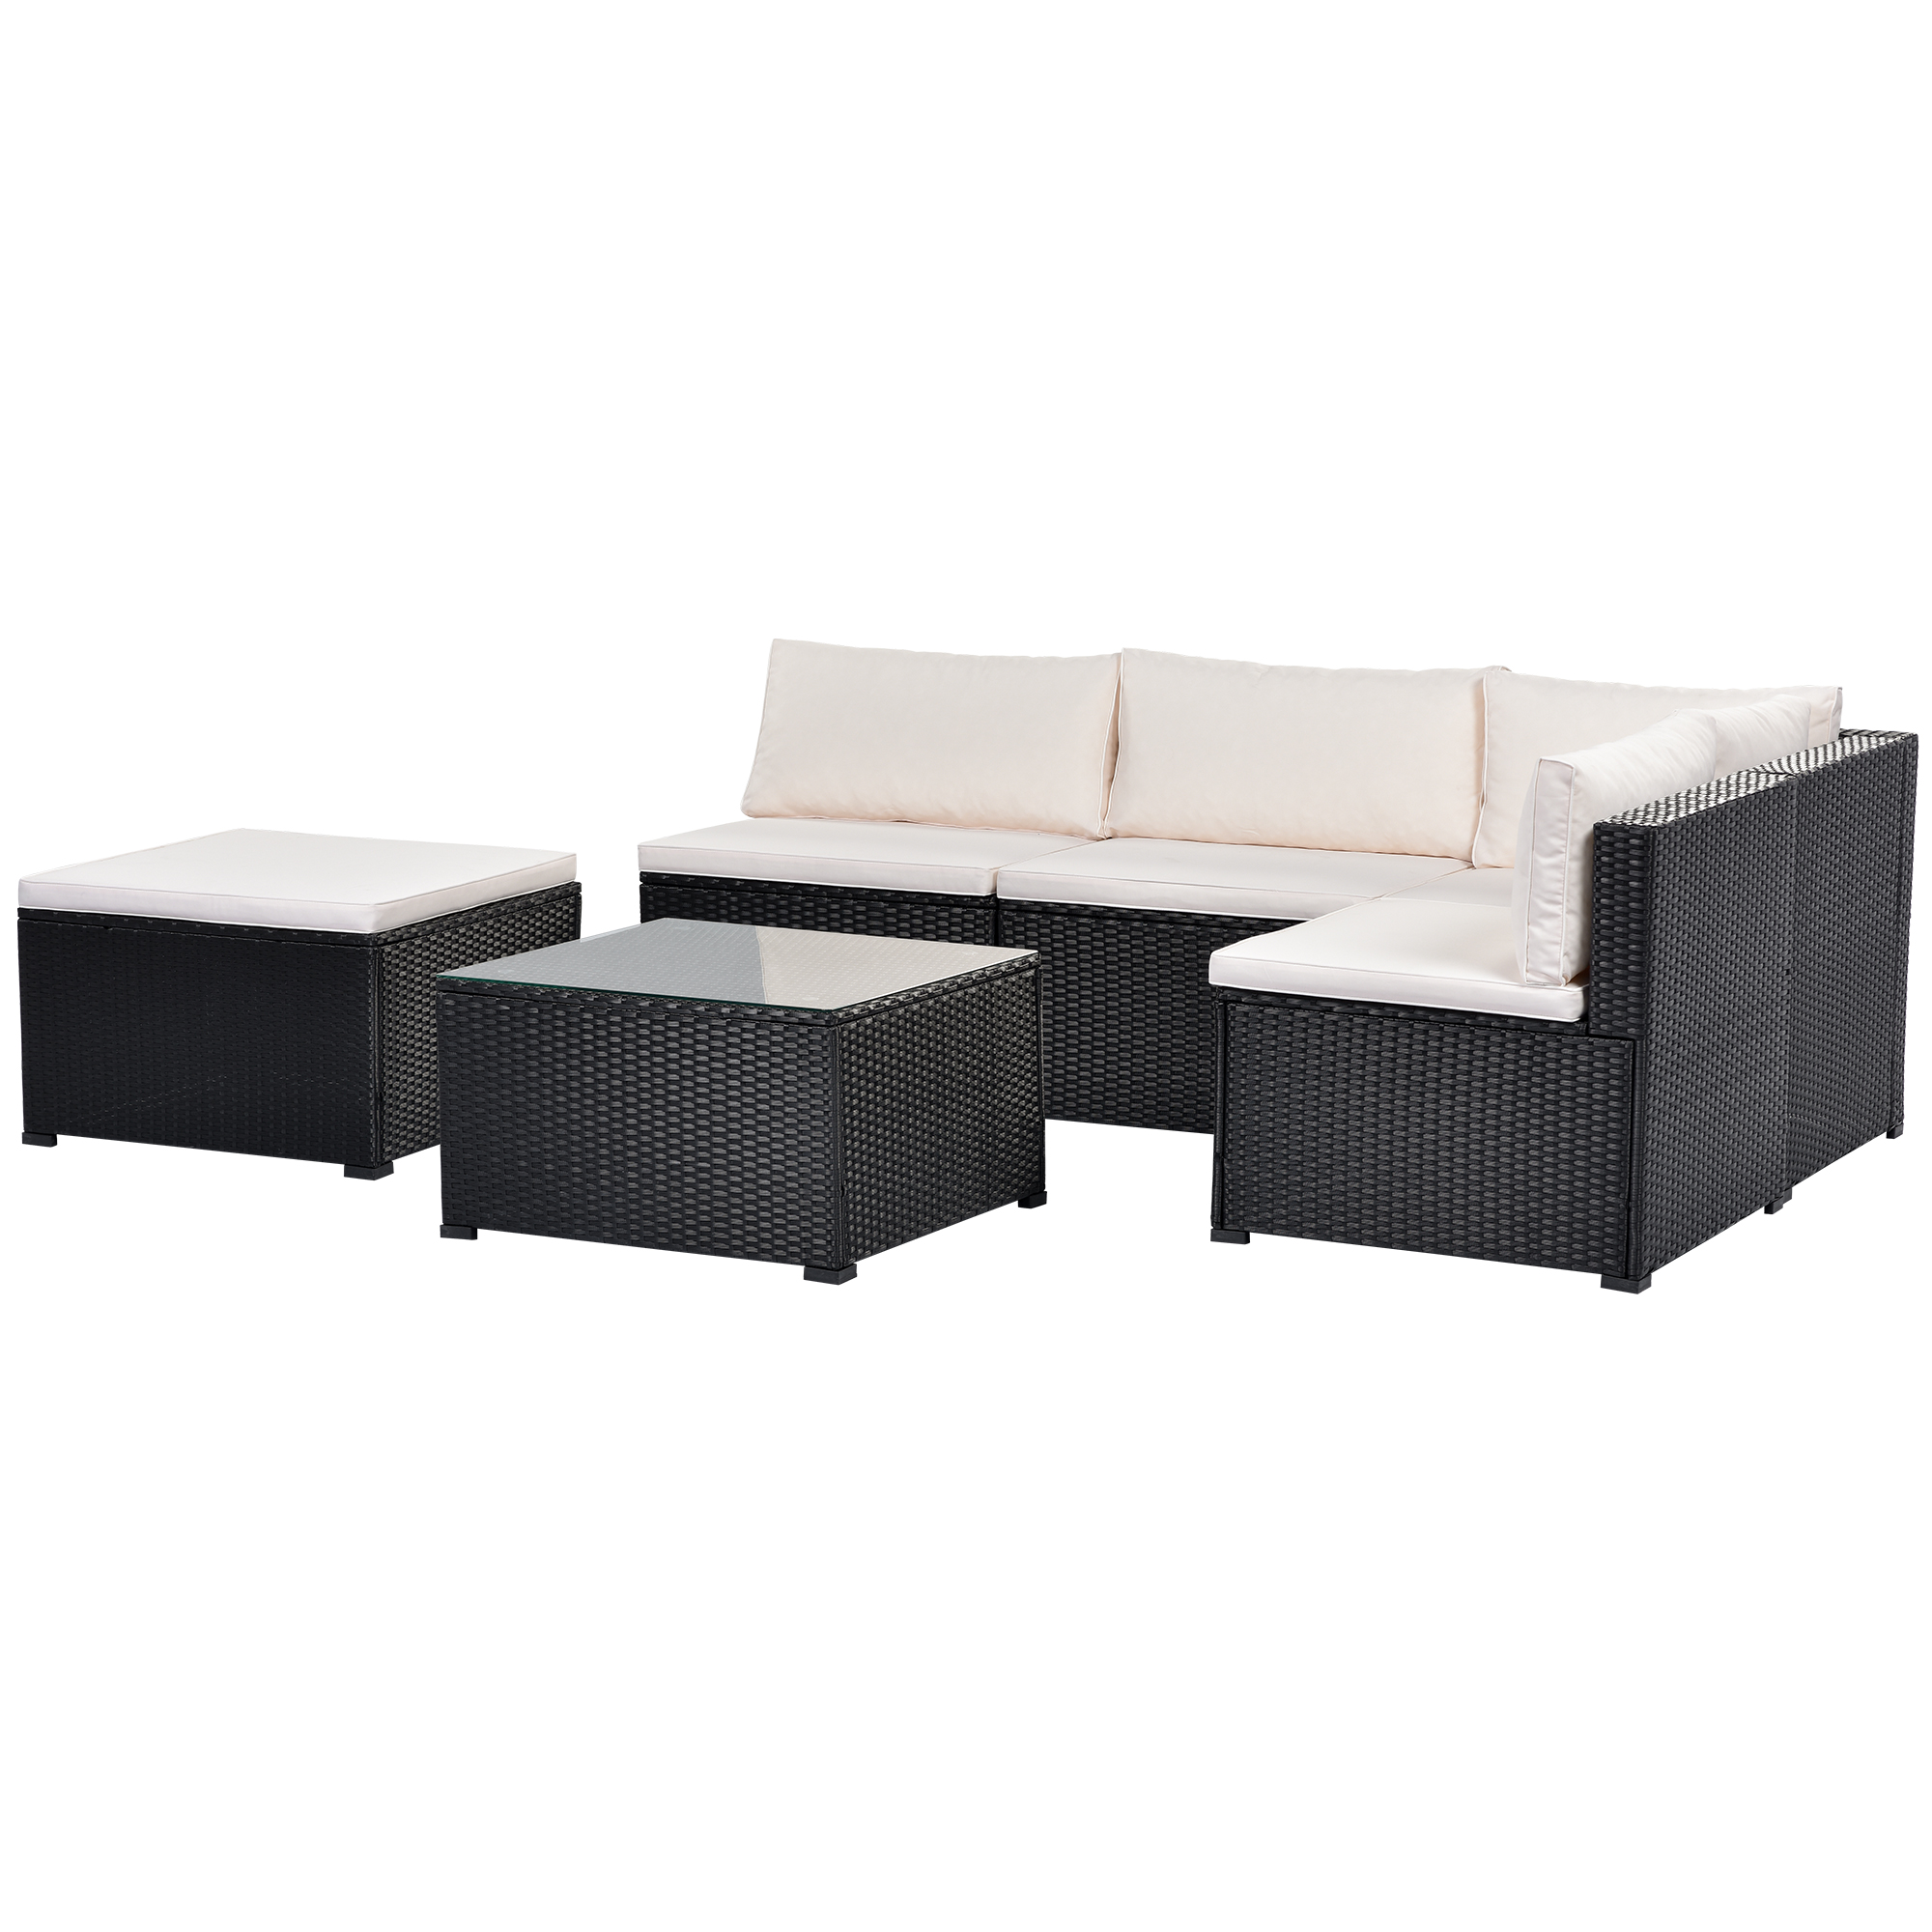 6-piece Outdoor Furniture Set With Pe Rattan Wicker, Patio Garden Sectional Sofa Chair, Removable Cushions Black Wicker, Beige Cushion